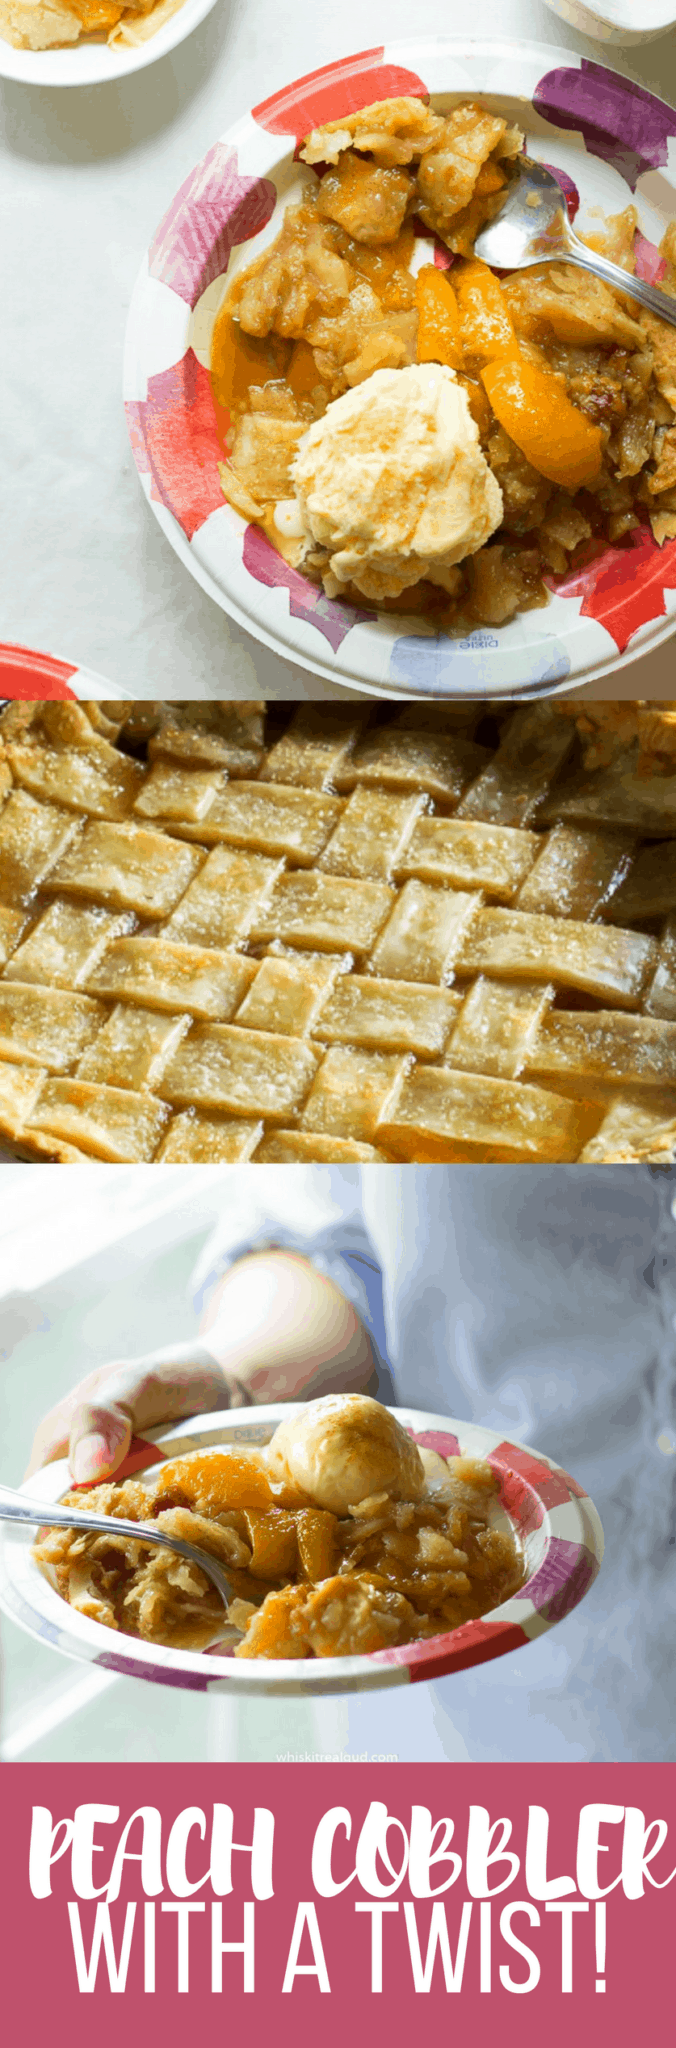 Peach Cobbler with a twist (check the recipe)! Buttery, flaky crust, juicy peaches and caramel sauce!